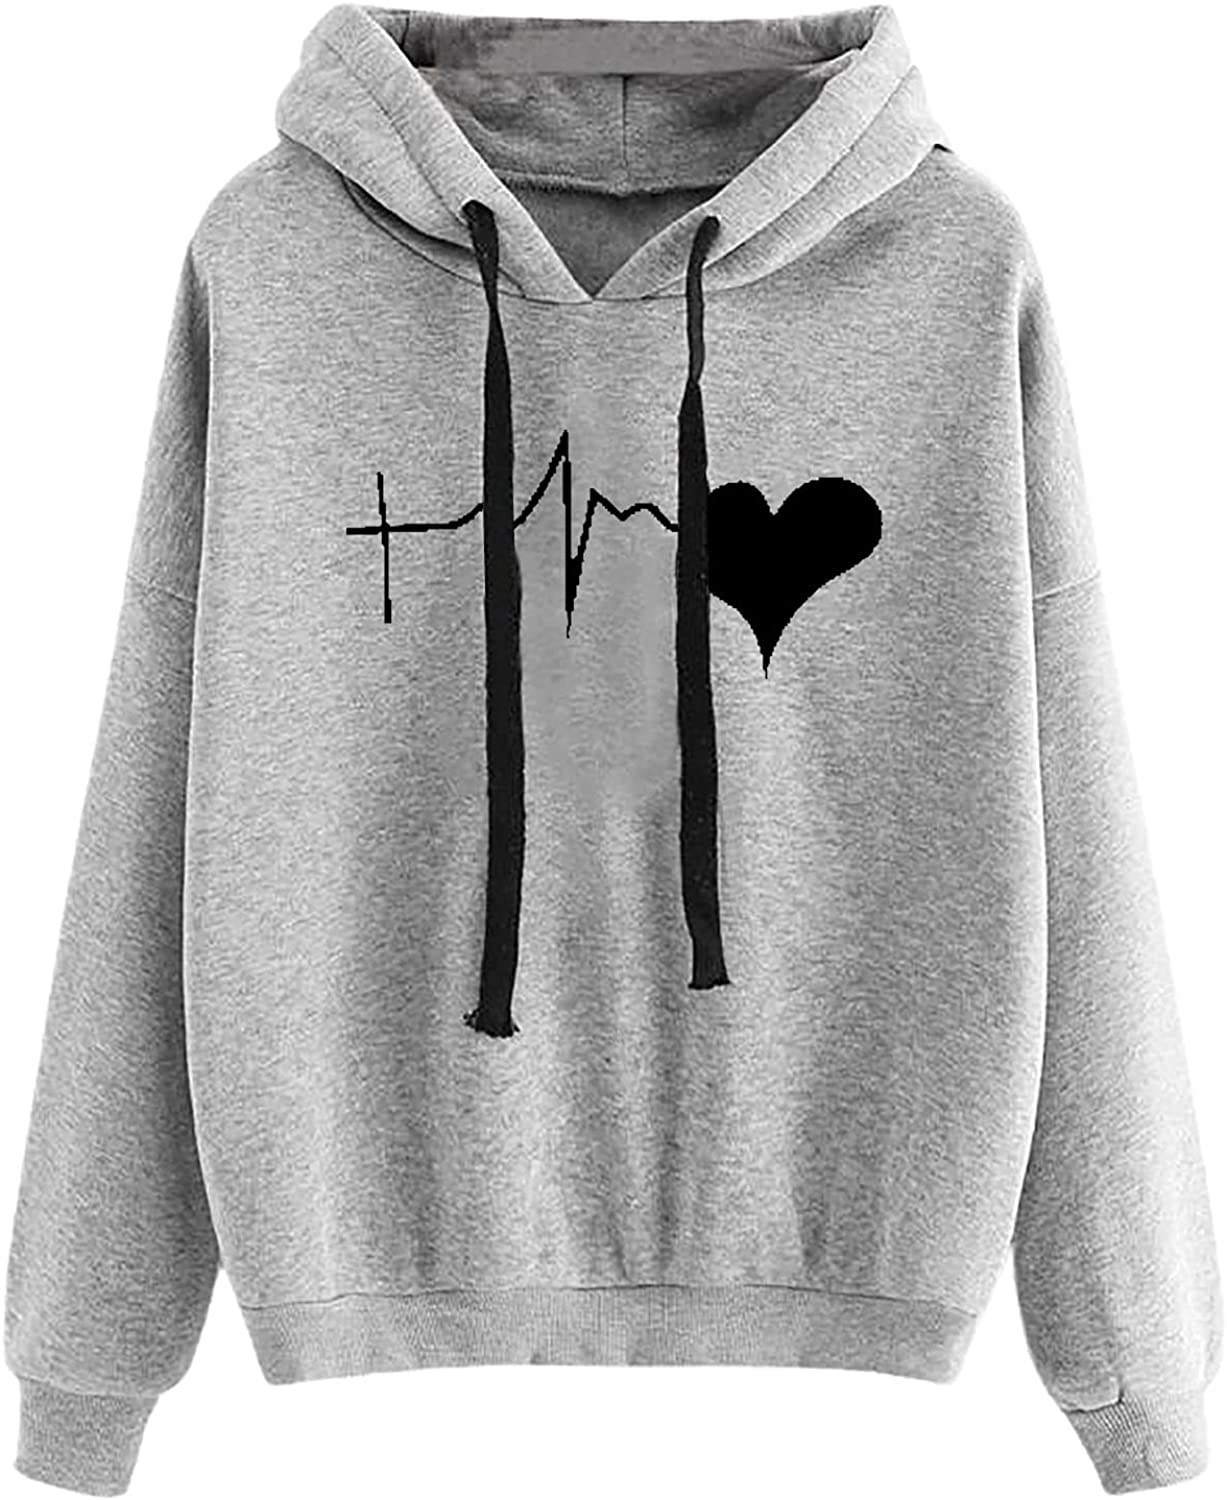 Women's Pullover Plus Size Tops Long Sleeve Sweatshirt Heart Print Casual Blouse Classic Loose Pullover